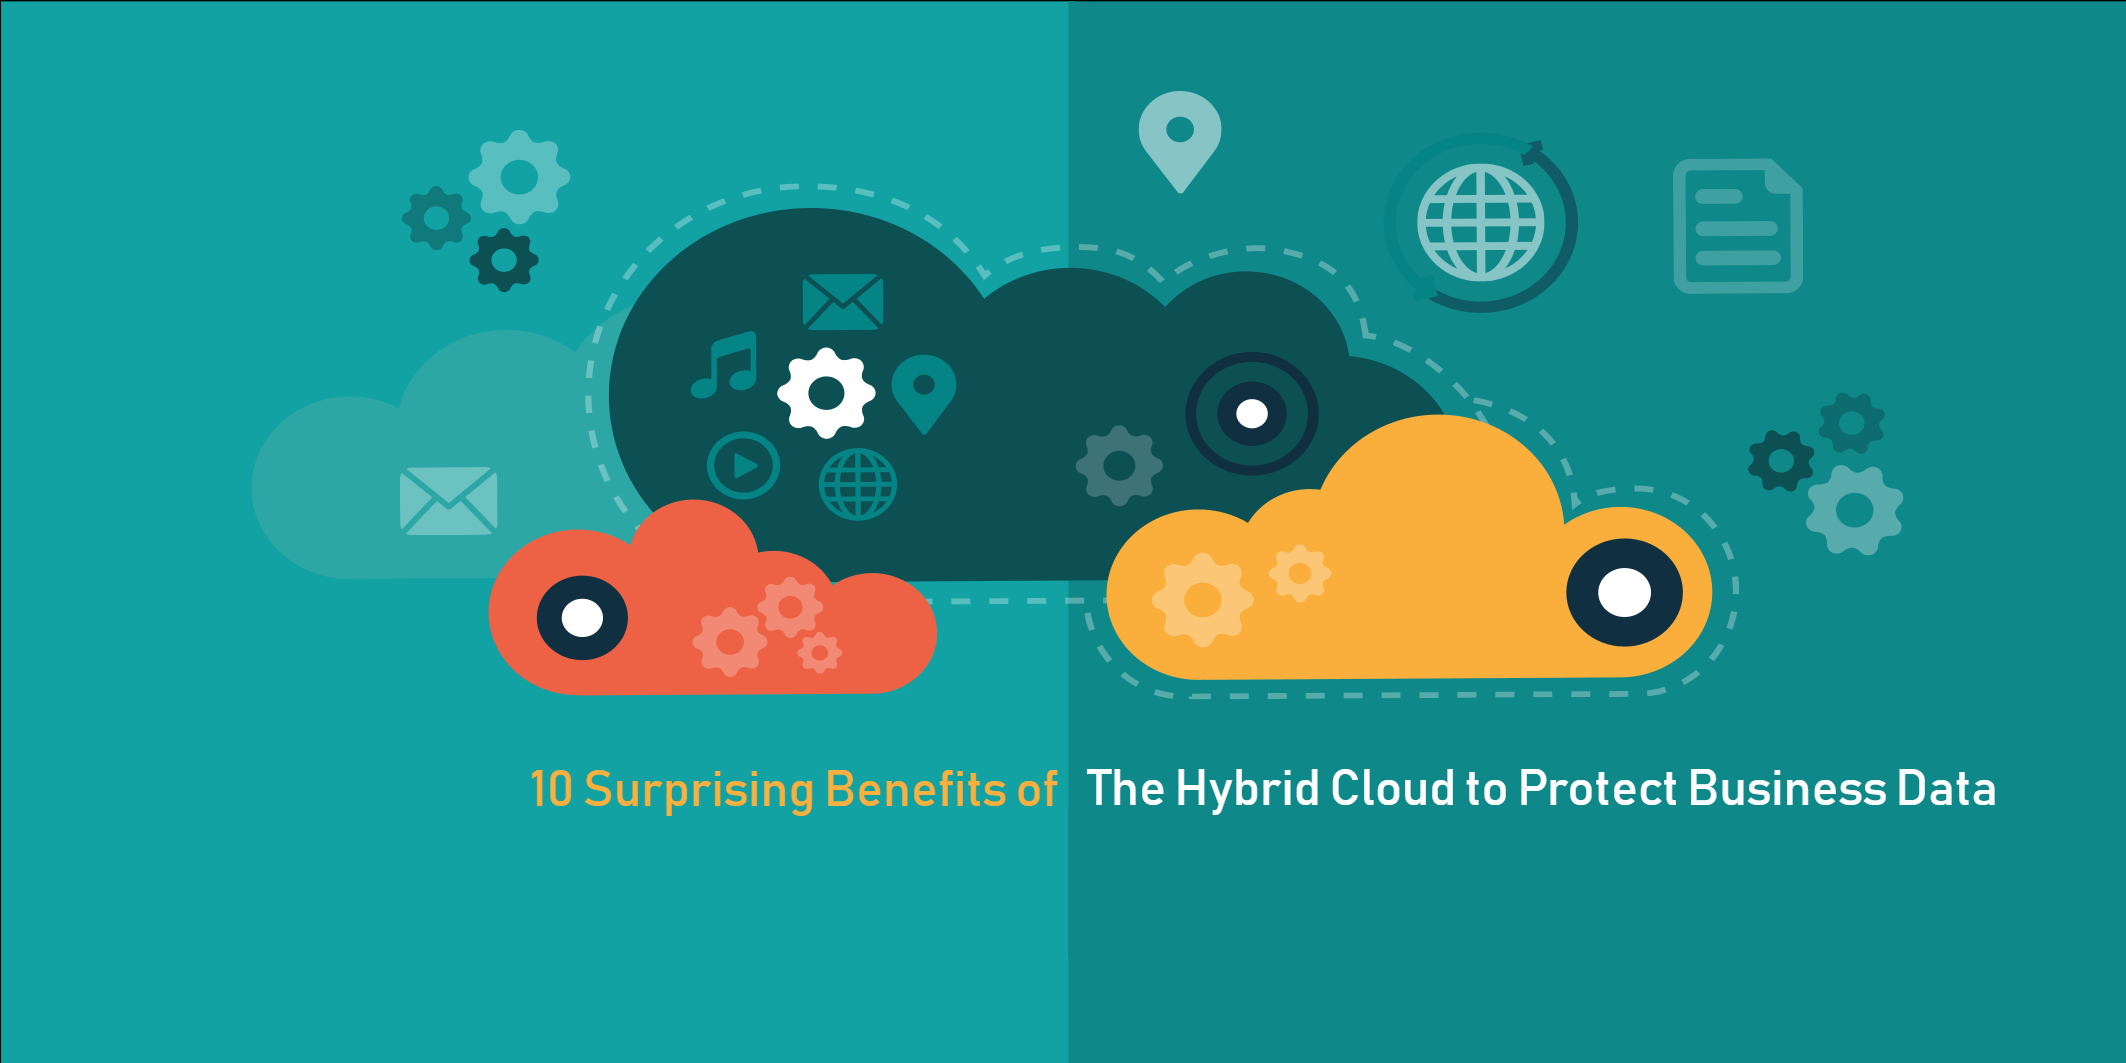 10-surprising-benefits-of-the-hybrid-cloud-to-protect-business-data